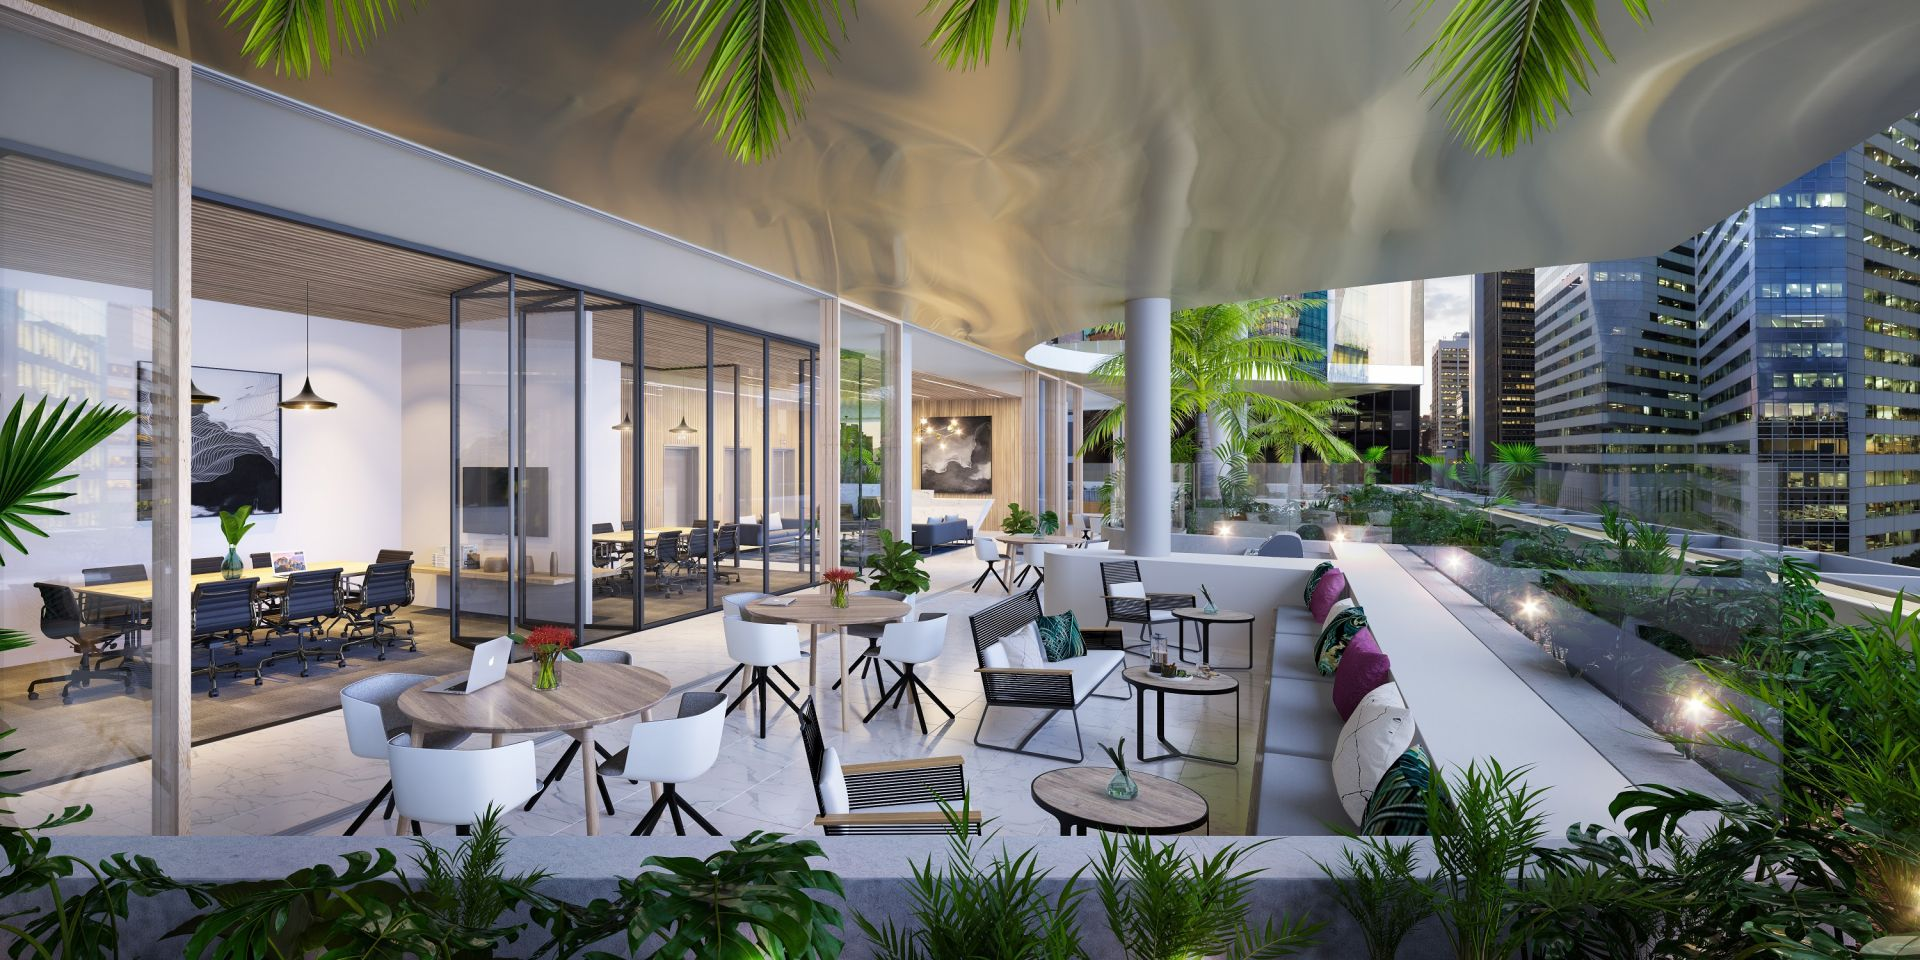 A rare commercial opportunity in the heart of Bris